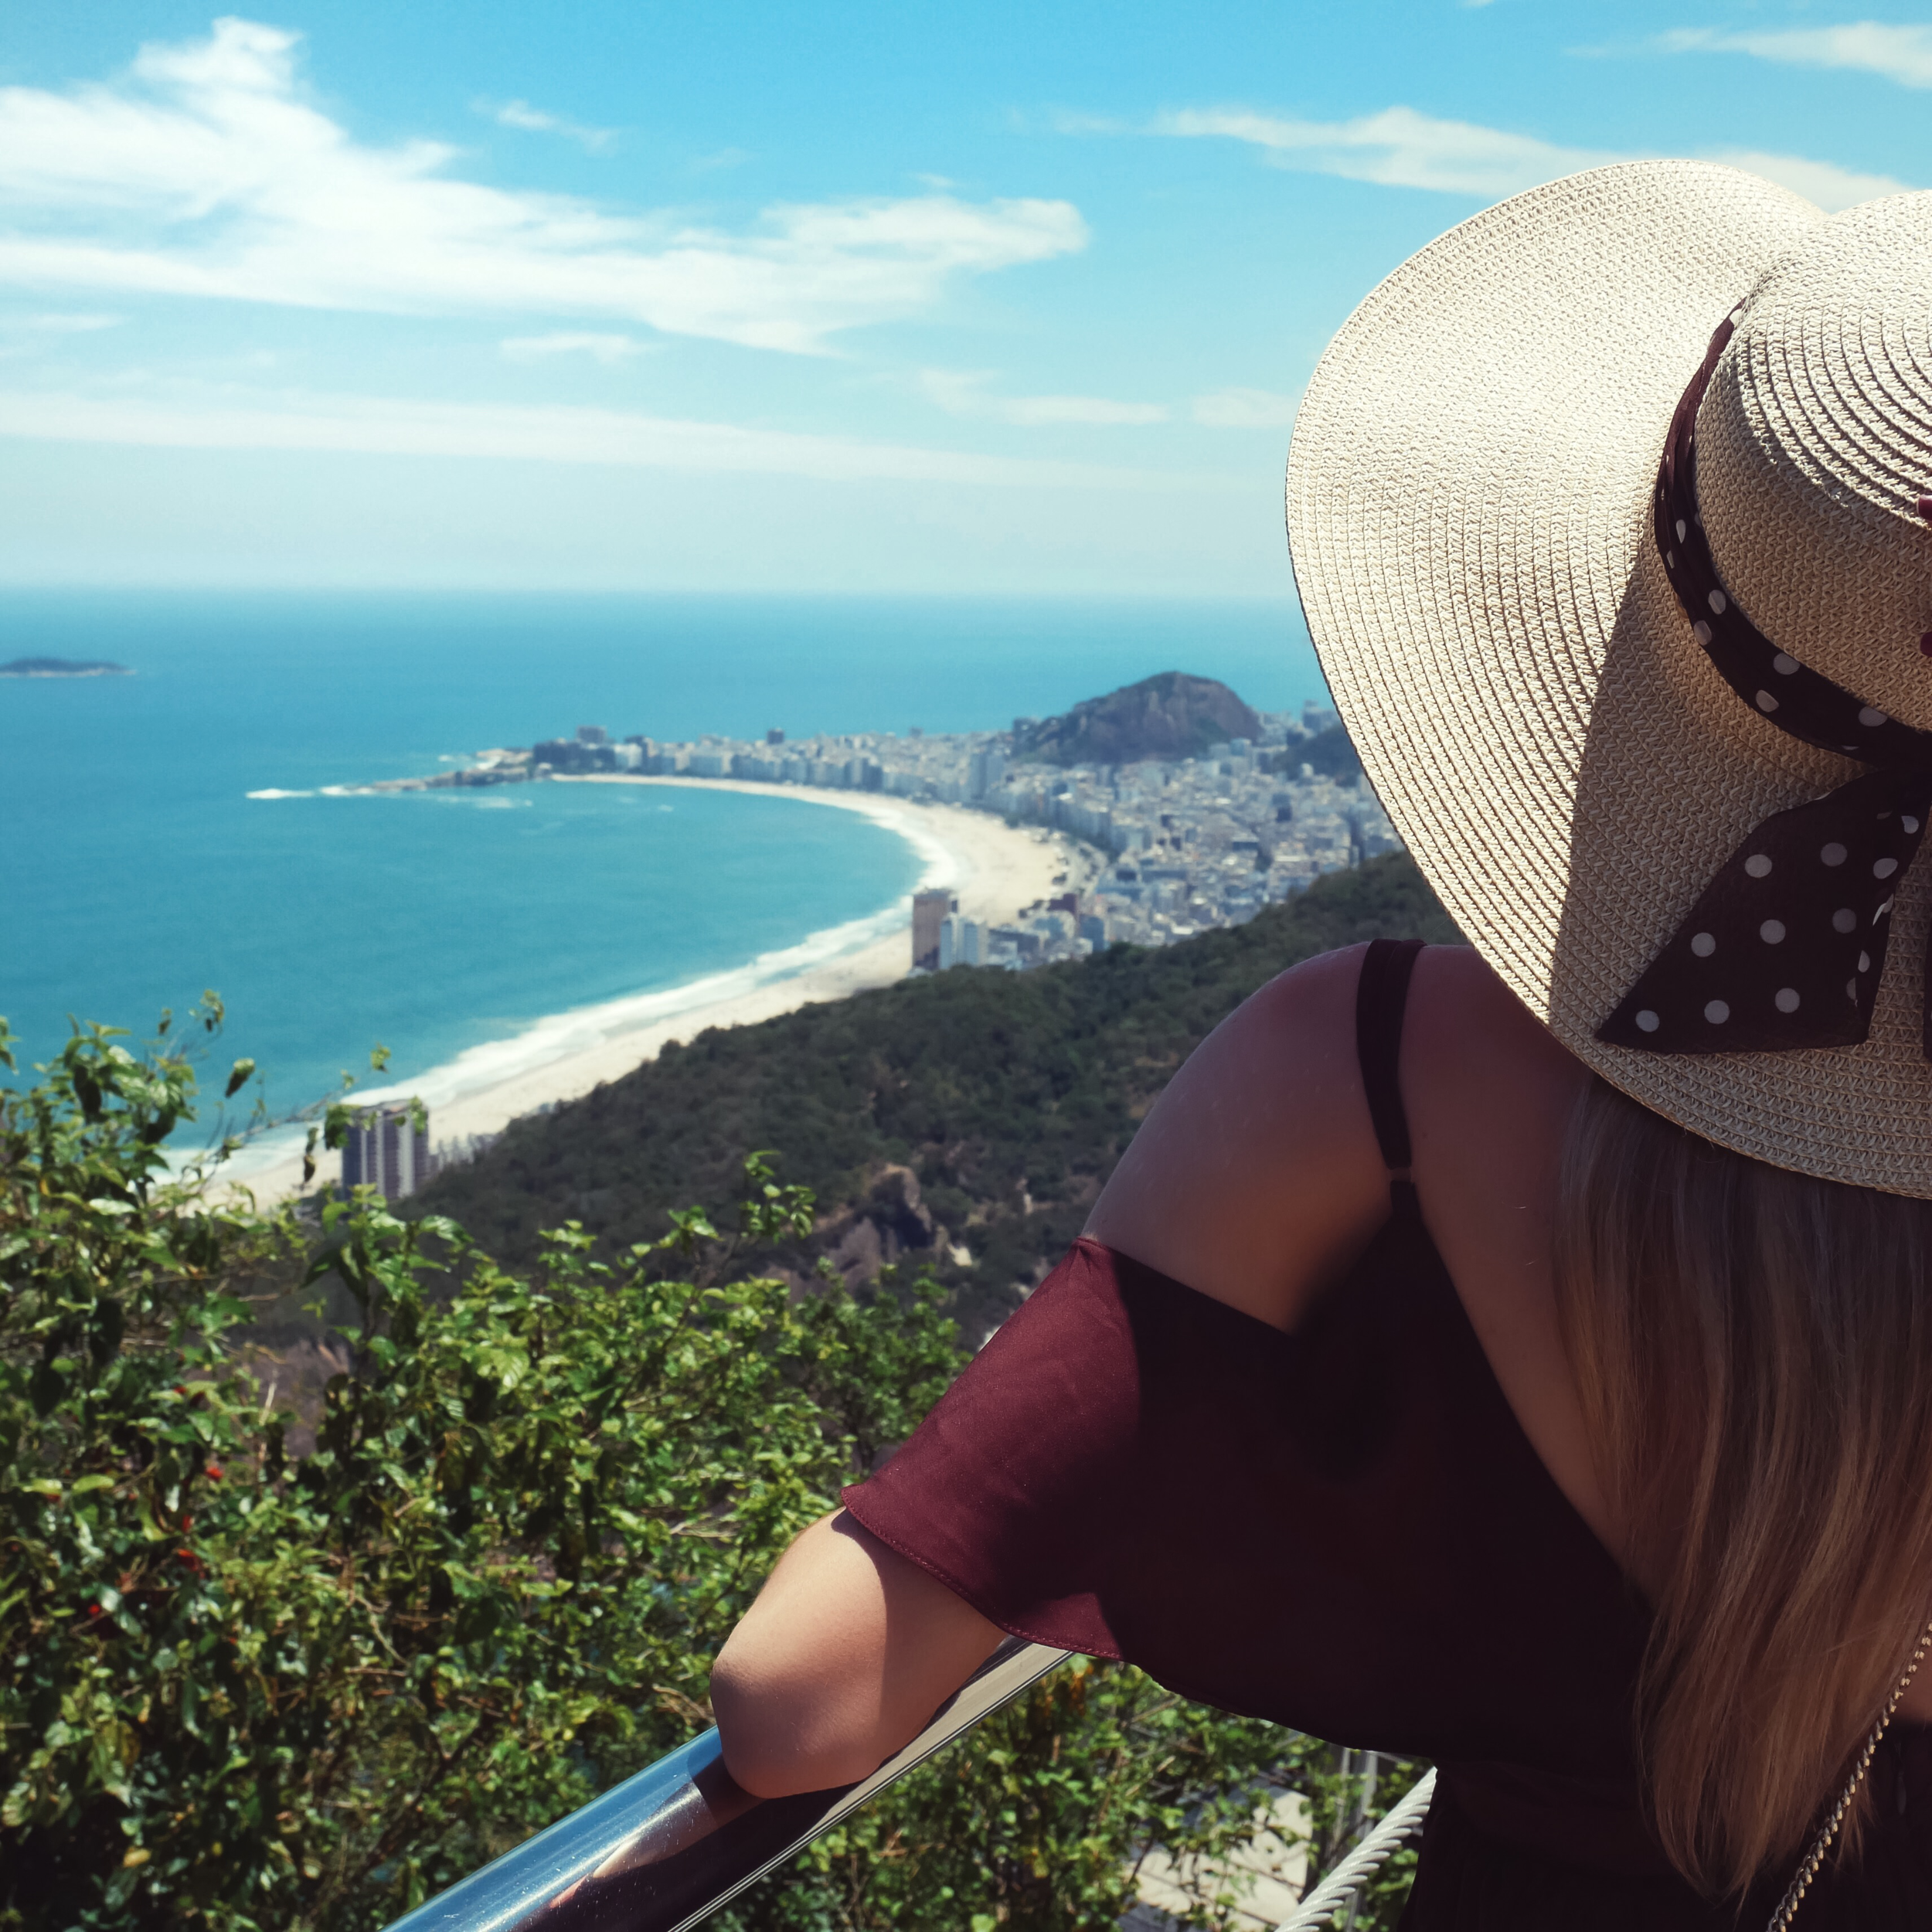 brazil, travel blogger, RIO DE JANEIRO, RIO, fashion, style, holiday fashion, laura blair, london fashion girl